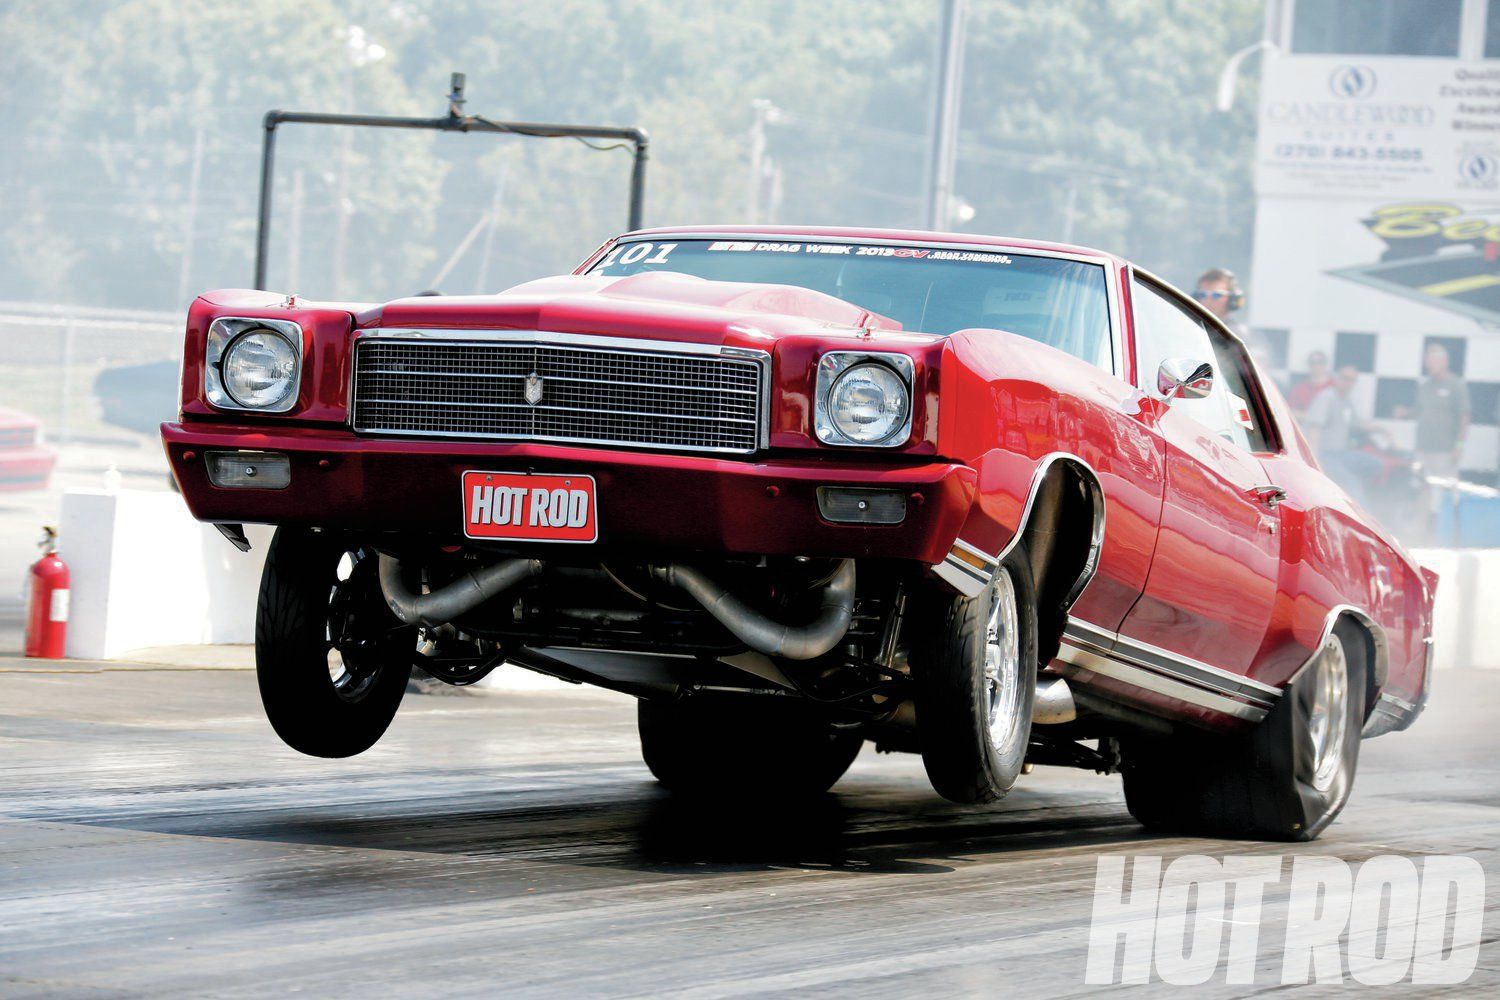 fast drag cars   1971 Chevy Monte Carlo Roy   Blown   Pinterest ...